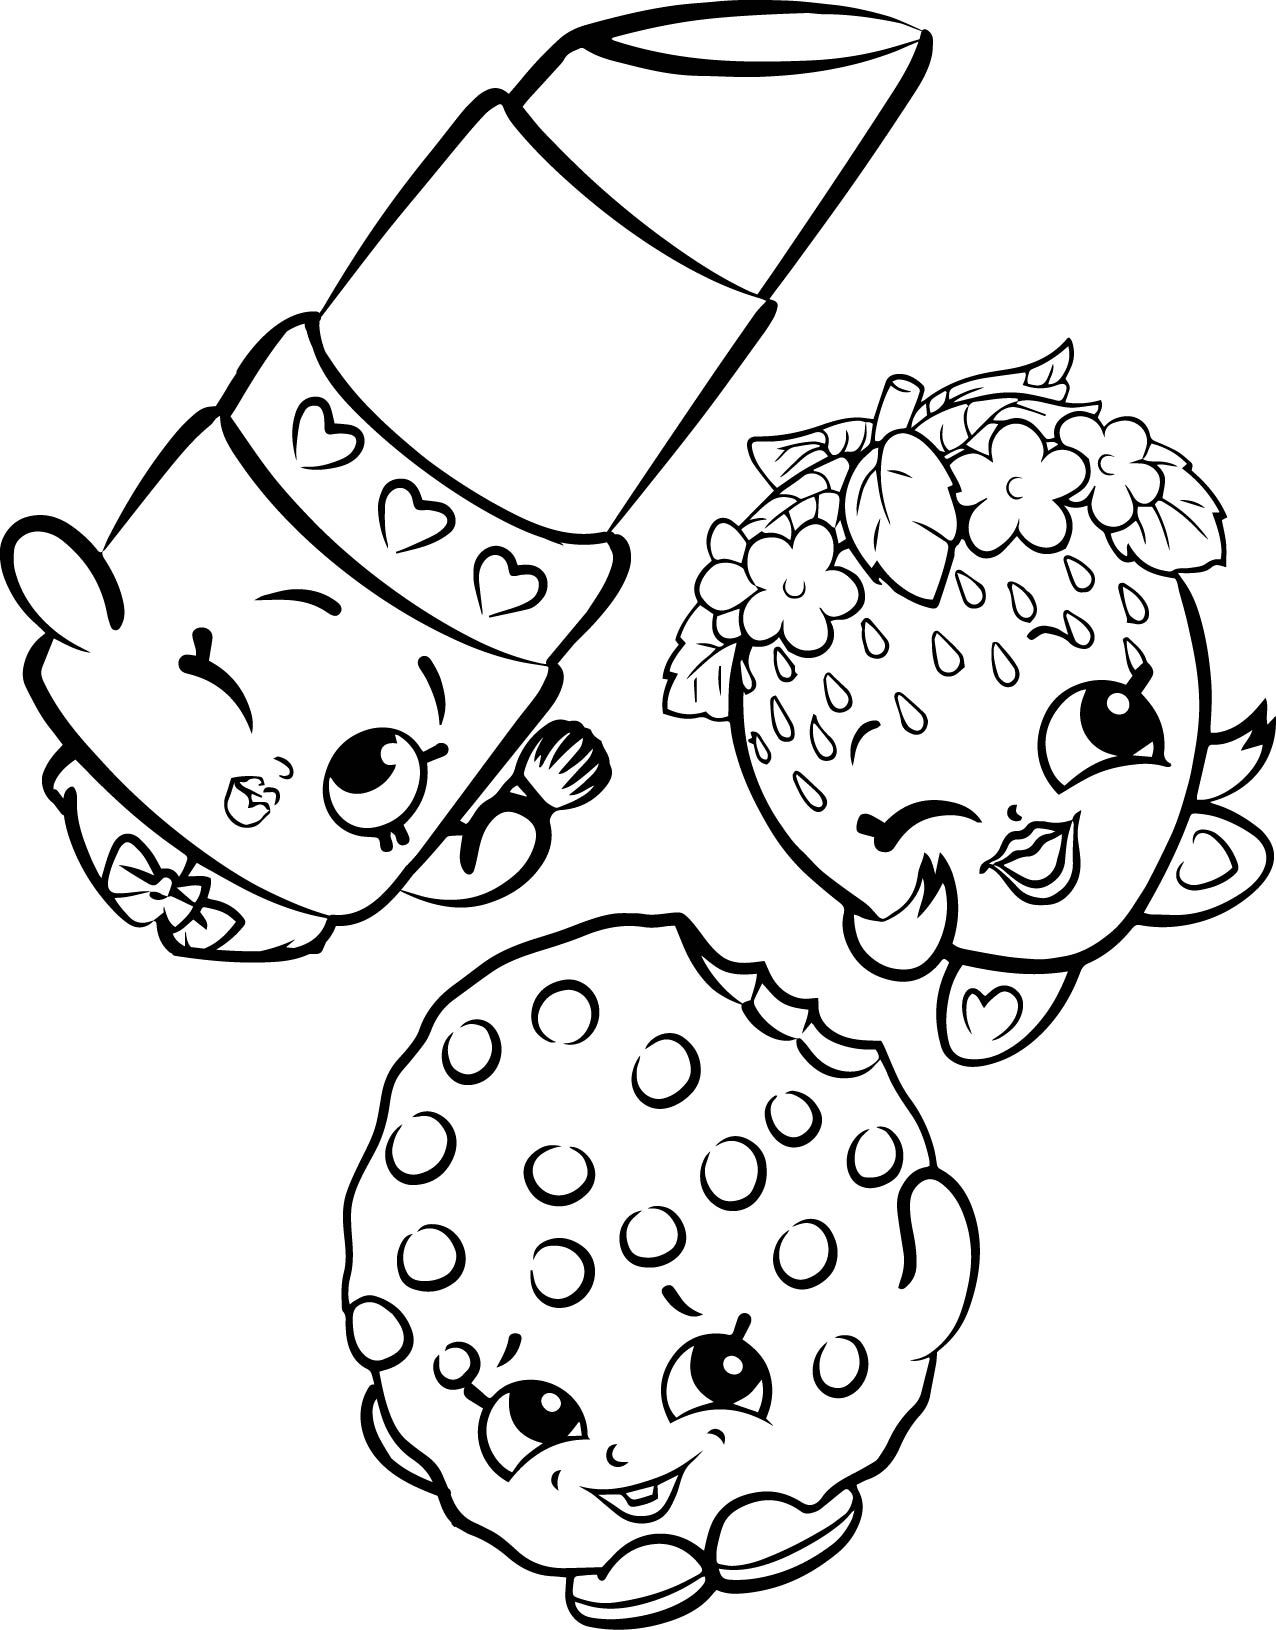 Shopkins Coloring Pages Shopkins Coloring Pages Free Printable